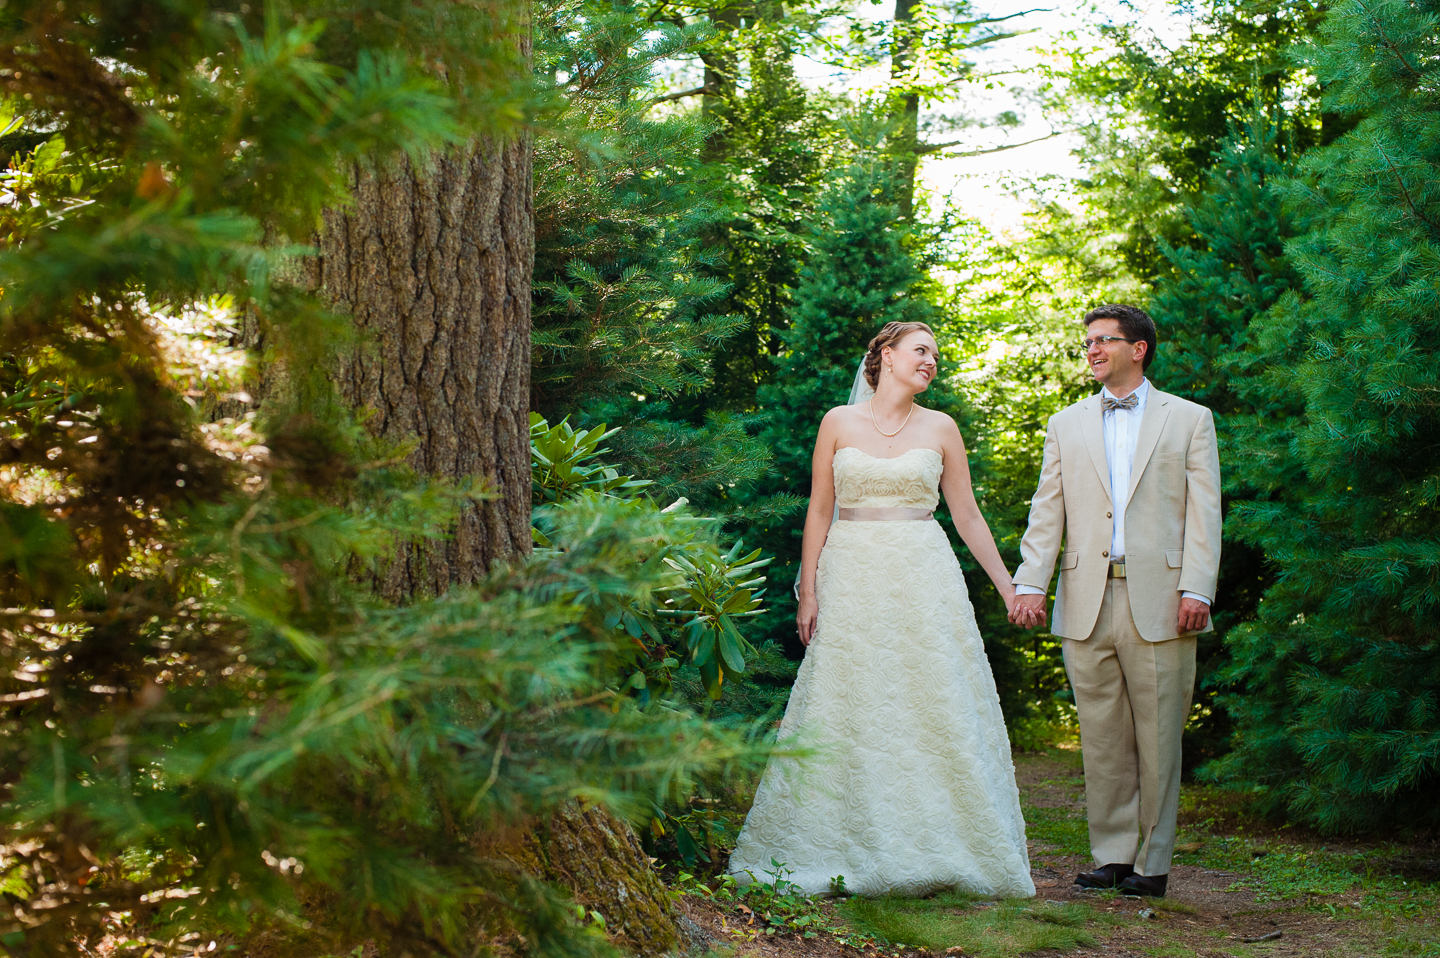 beautiful bride and groom hold hands and walk down a wooded path